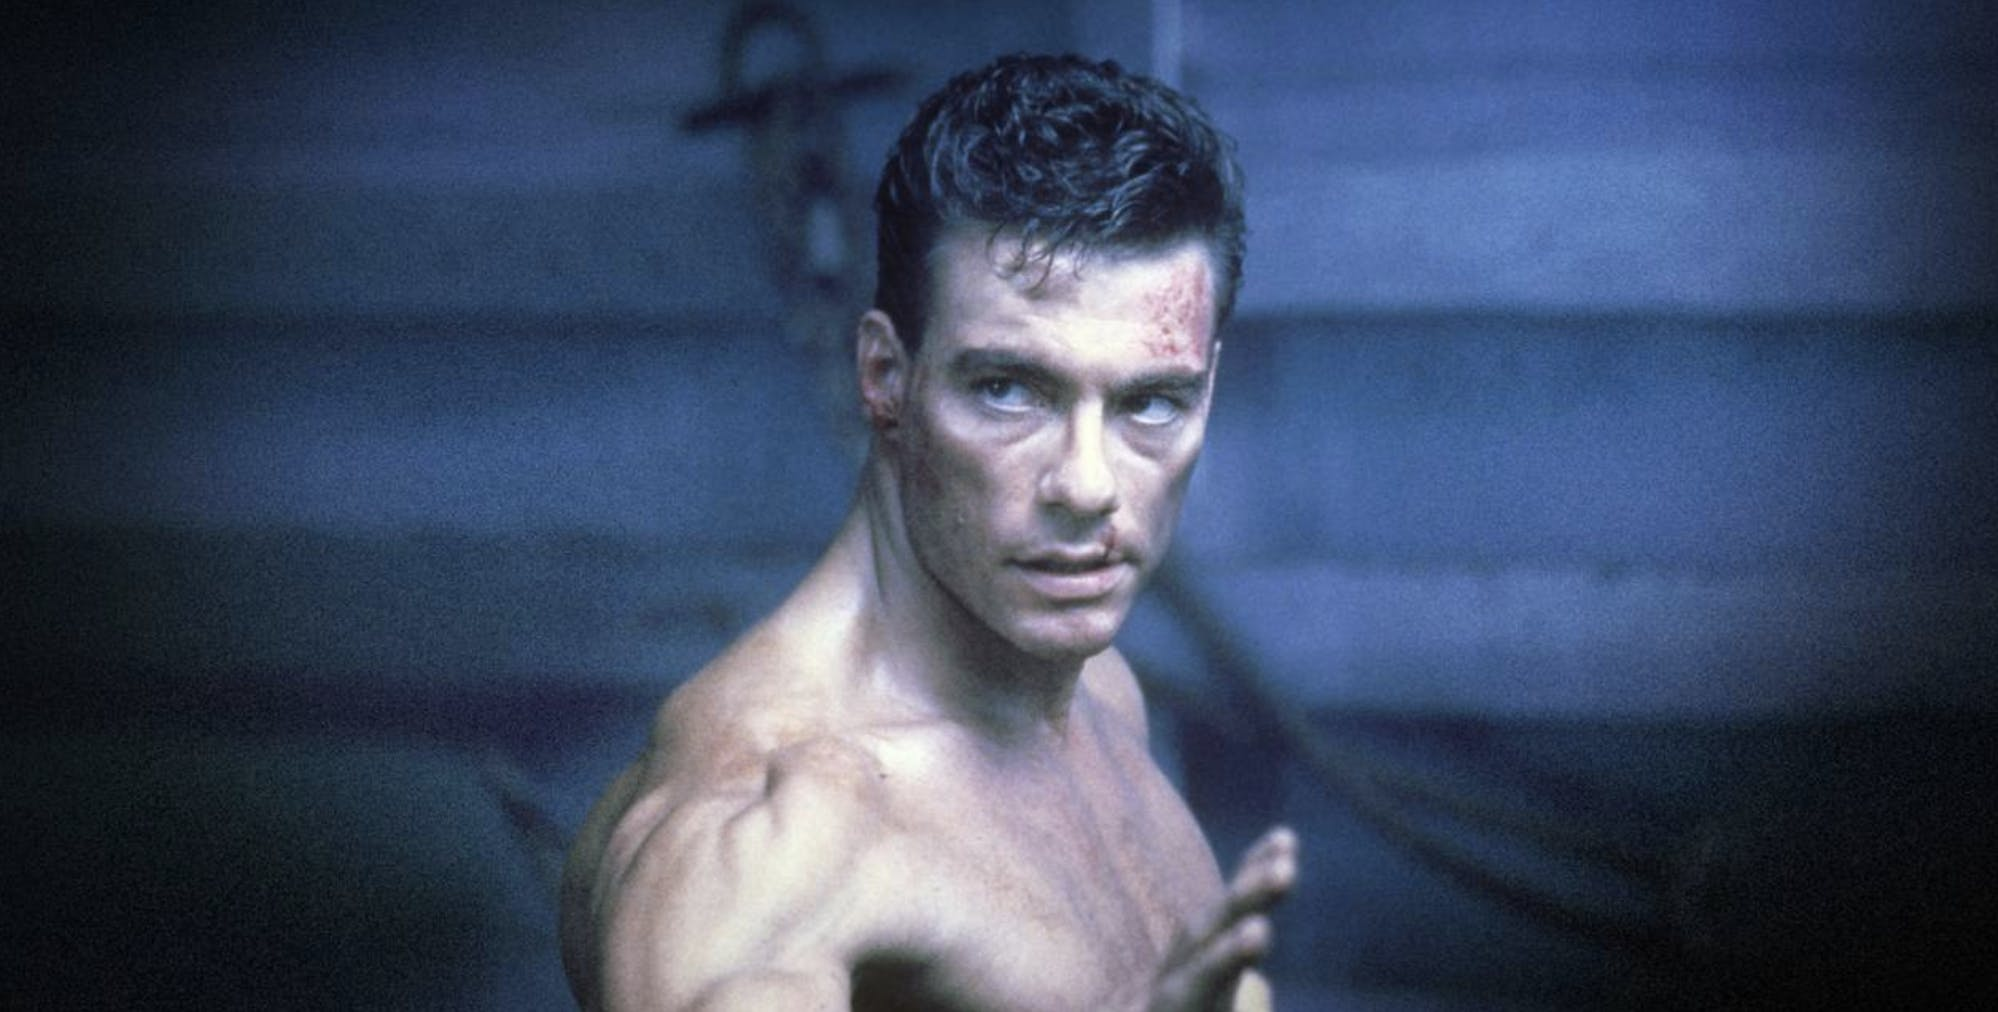 sexy movies on hbo - double impact